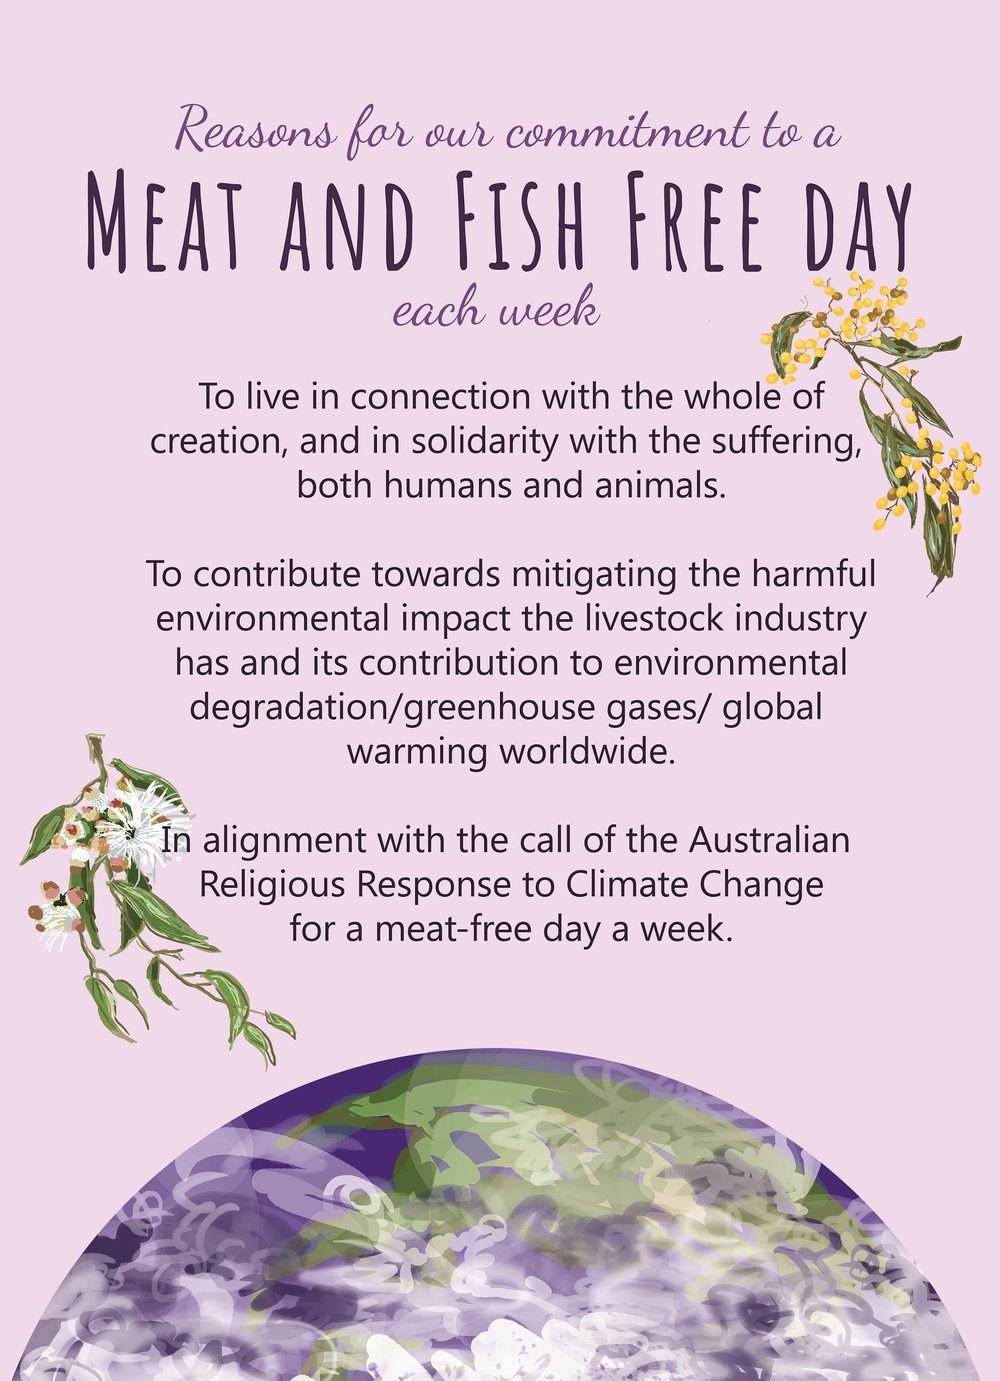 Meat Free  Day Card for Mary Anne_13July2017_Reasons side.jpg